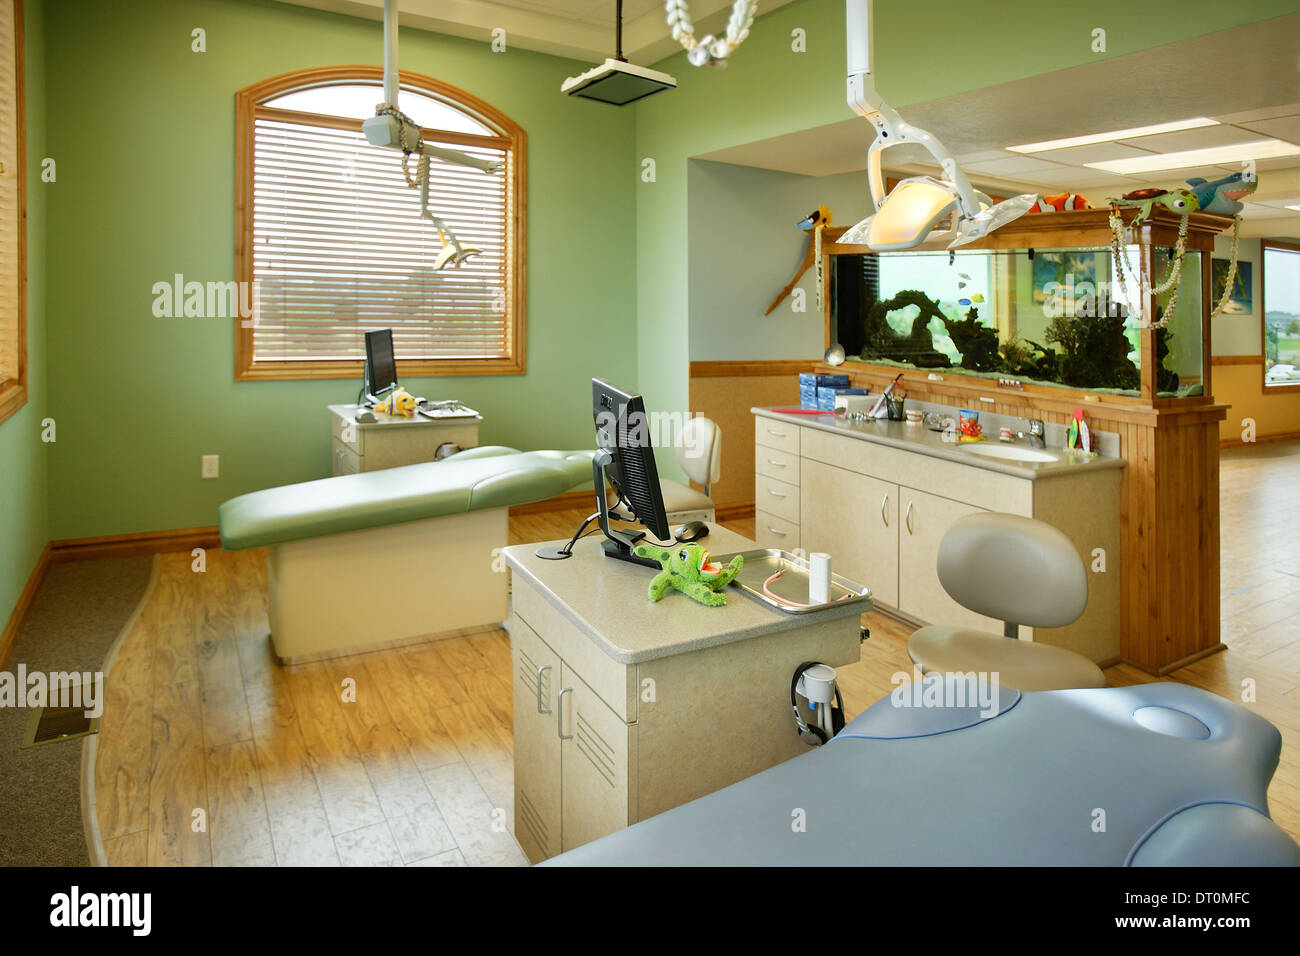 The Interior Of A Modern Pediatric Dental Office, Showing Modern Equipment  For Treatment